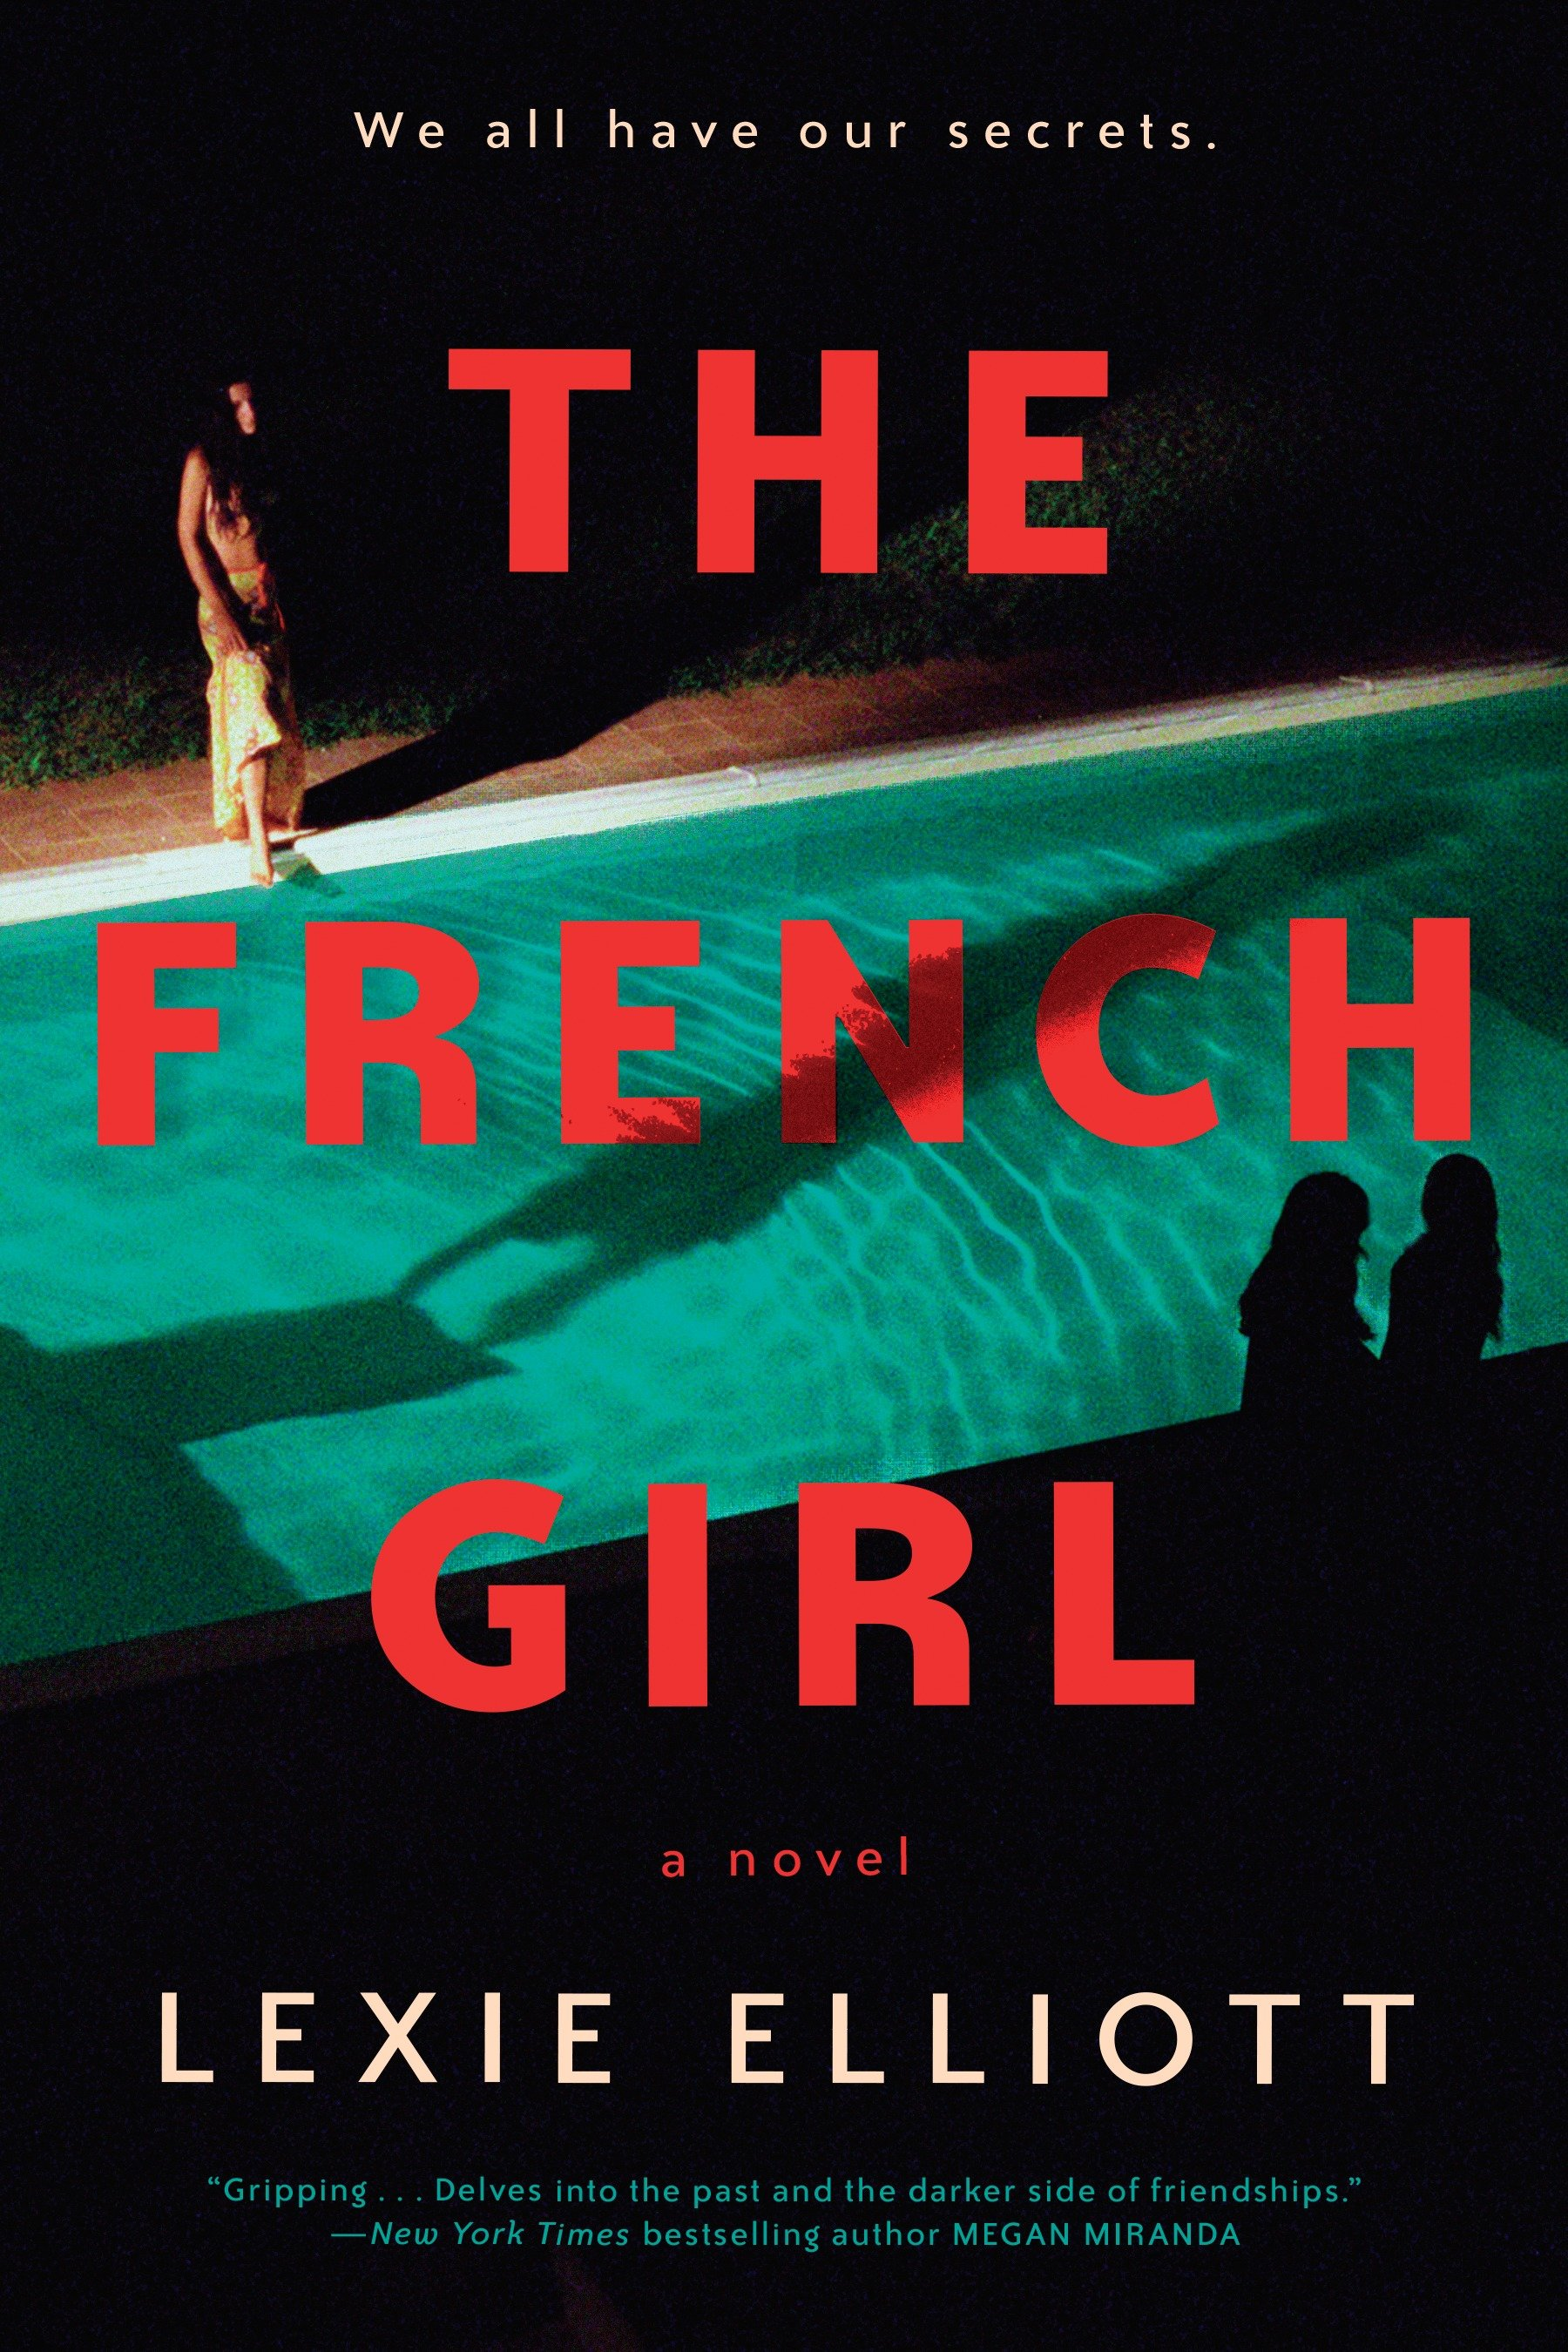 The French girl cover image